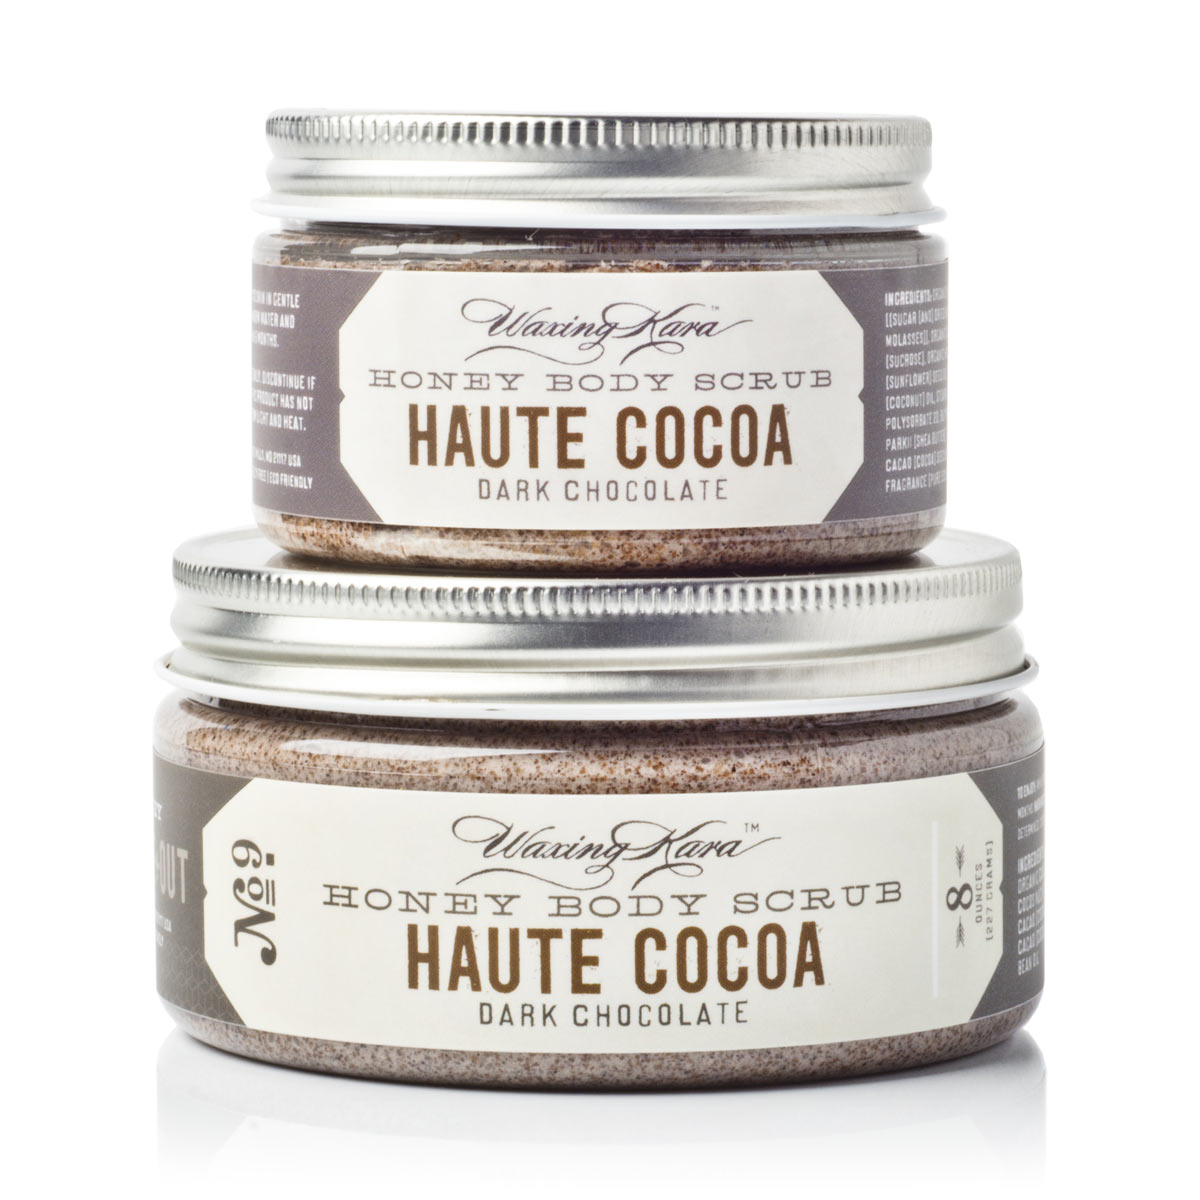 Haute Cocoa Scrub in 4oz and 8oz size on white